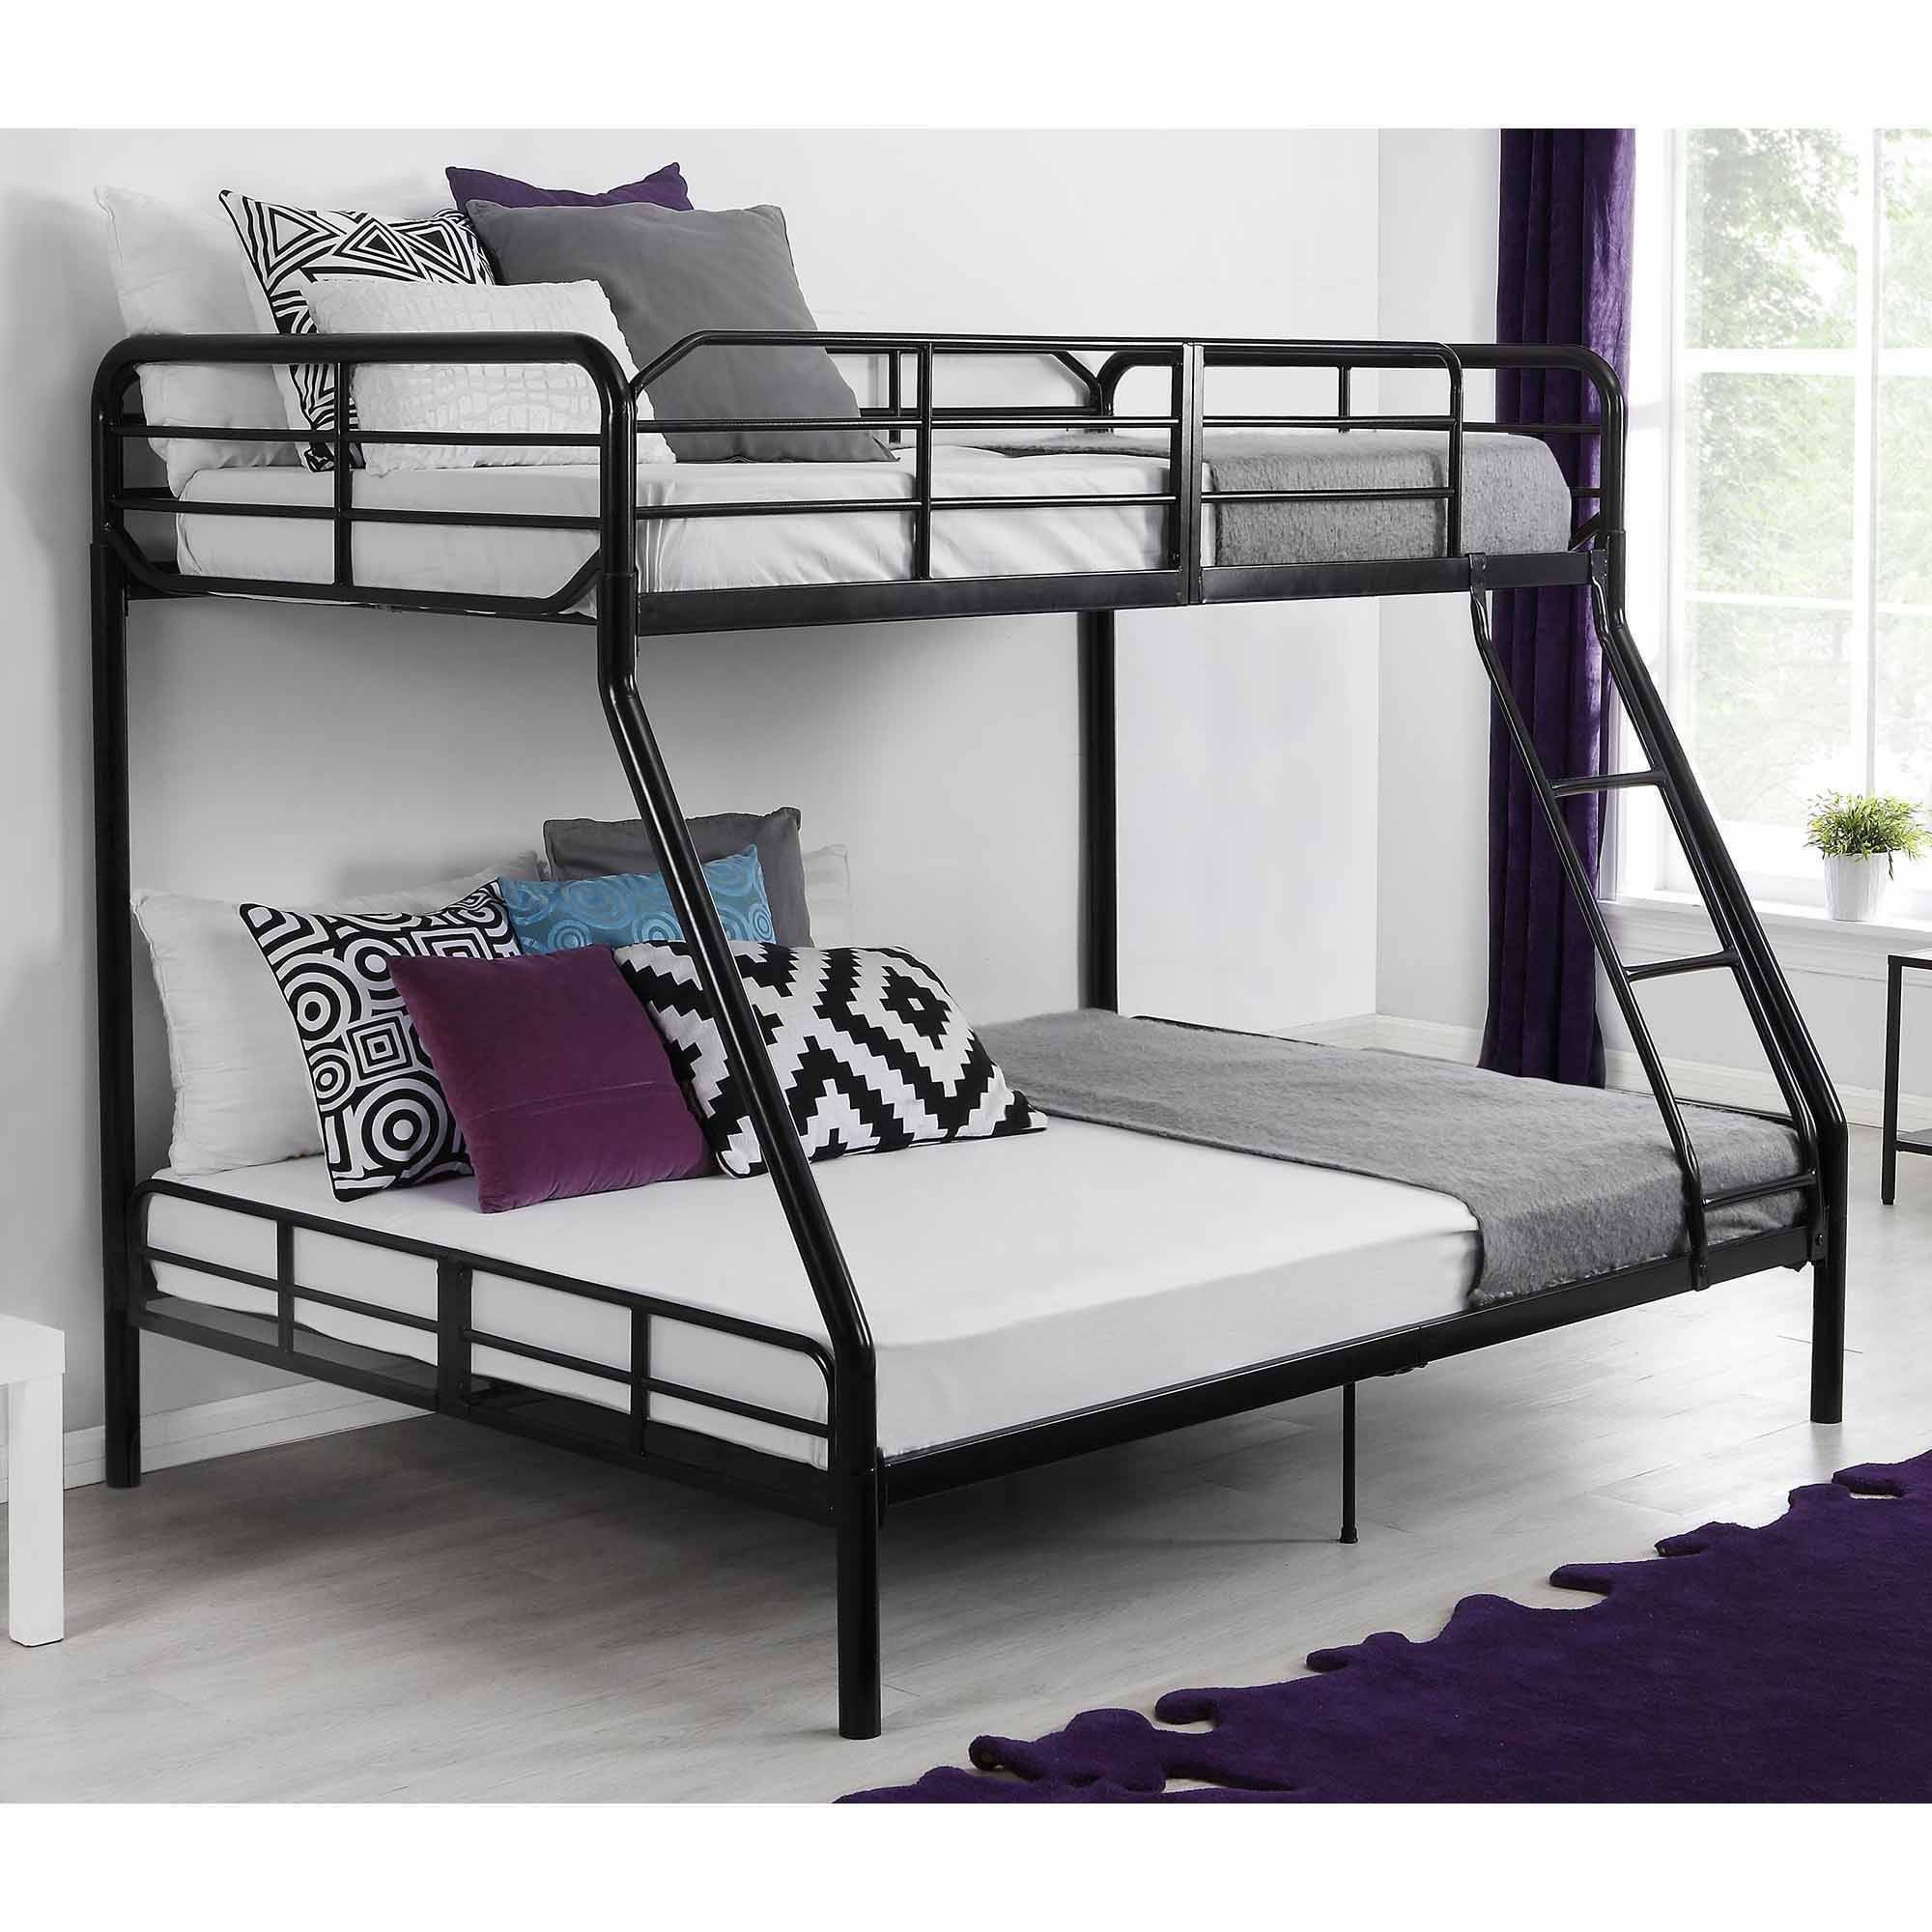 MYDAL Bunk bed frame IKEA The ladder can mount on the left or right side of